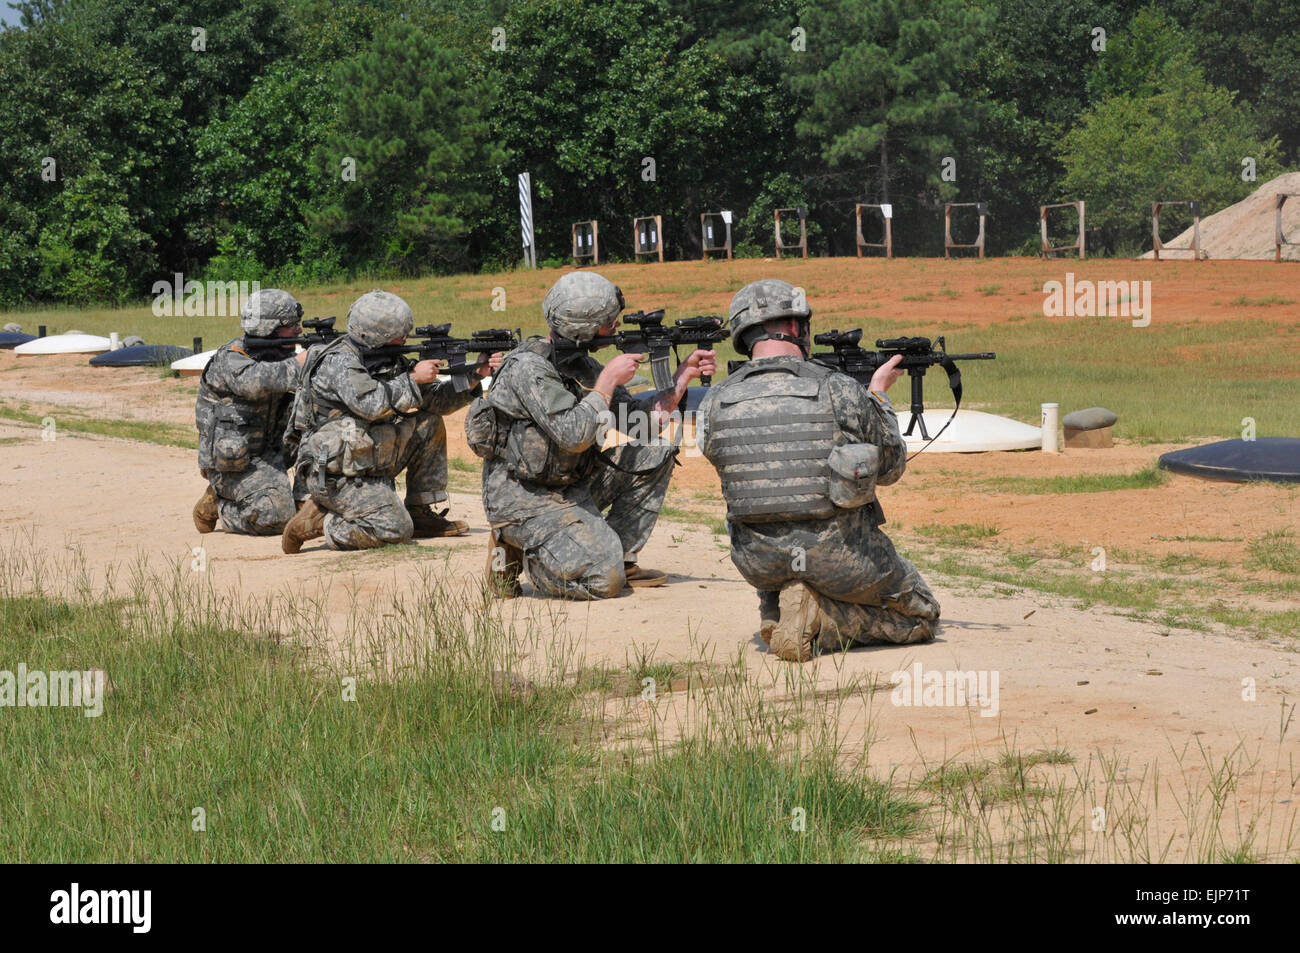 Paratroopers from A Troop, 1st Squadron, 73rd Cavalry Regiment, 2nd Brigade Combat Team, 82nd Airborne Division, - Stock Image